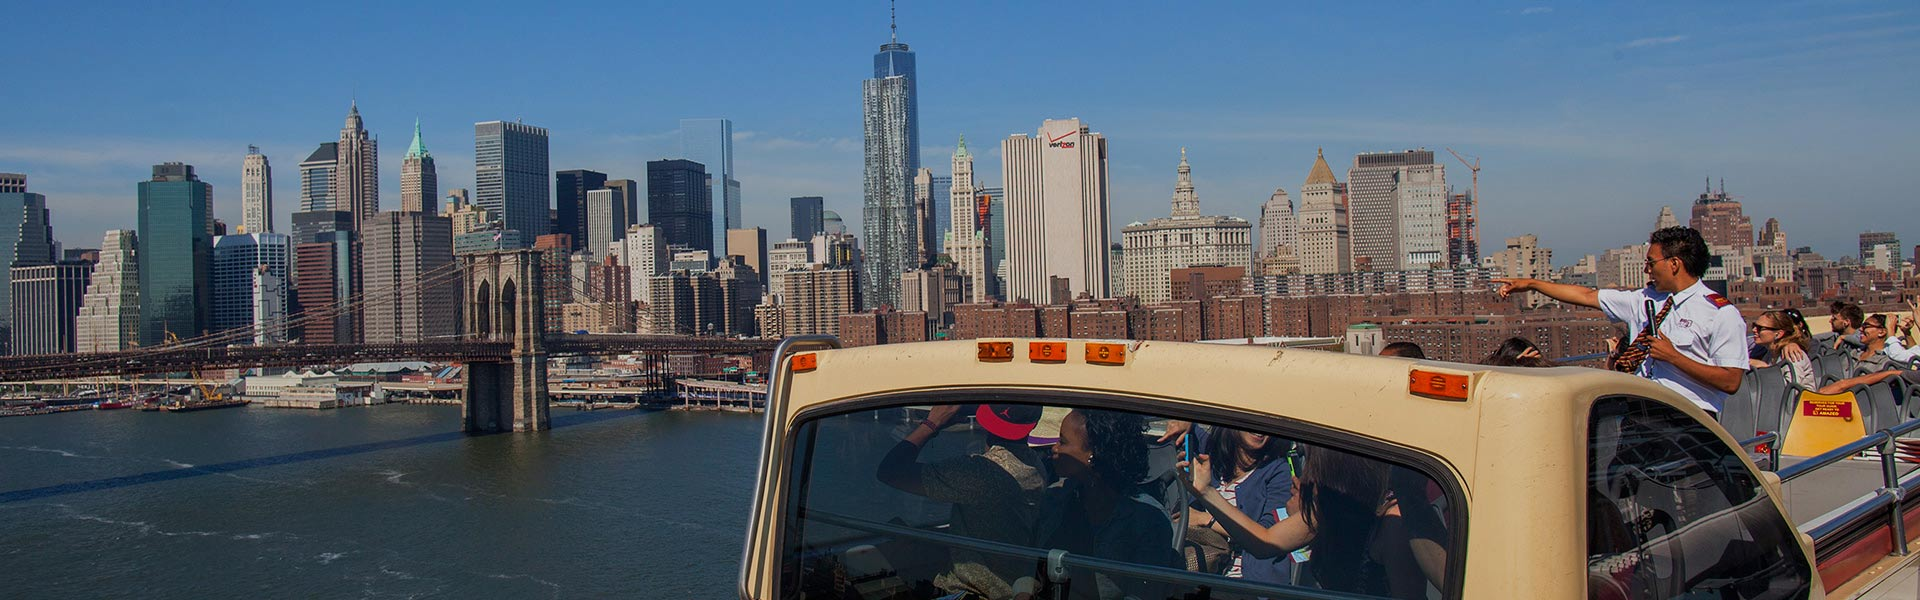 New York sightseeing tours with Big Bus